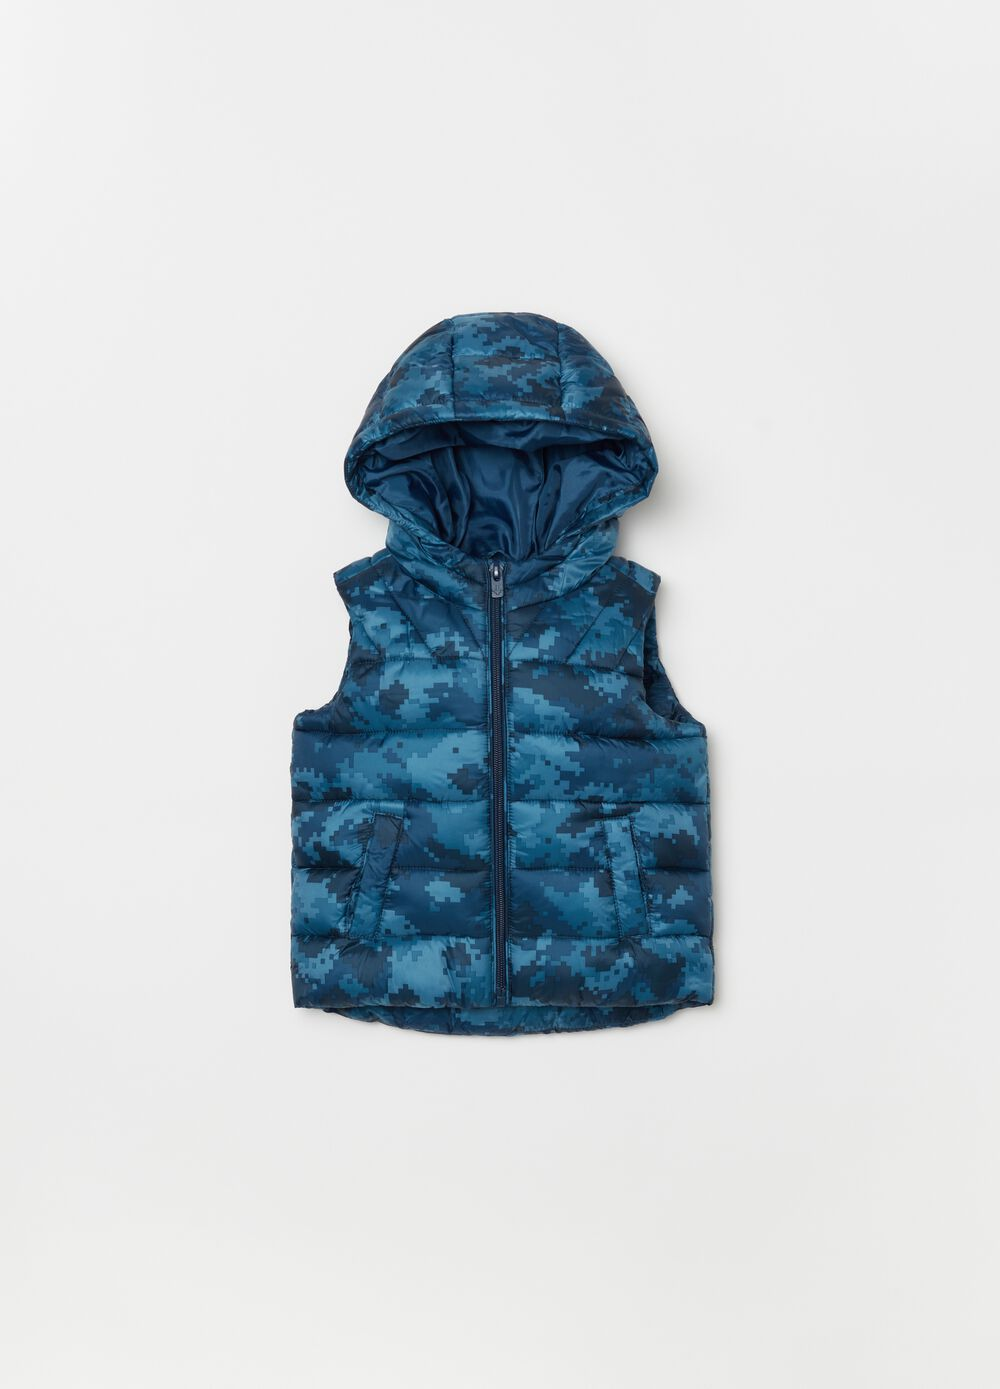 Quilted gilet with patterned hood